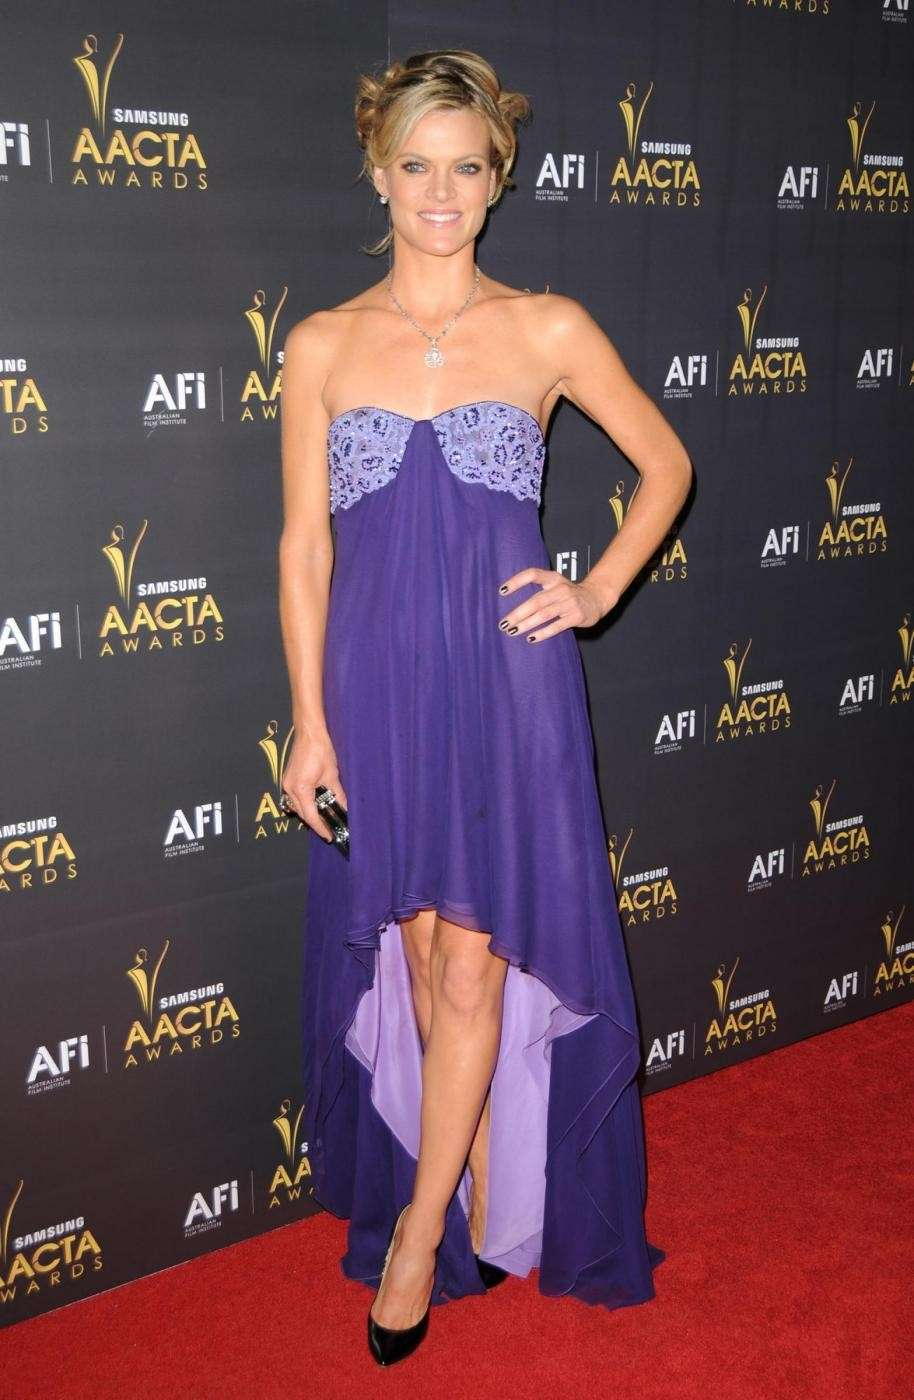 Missi Pyle AACTAwards